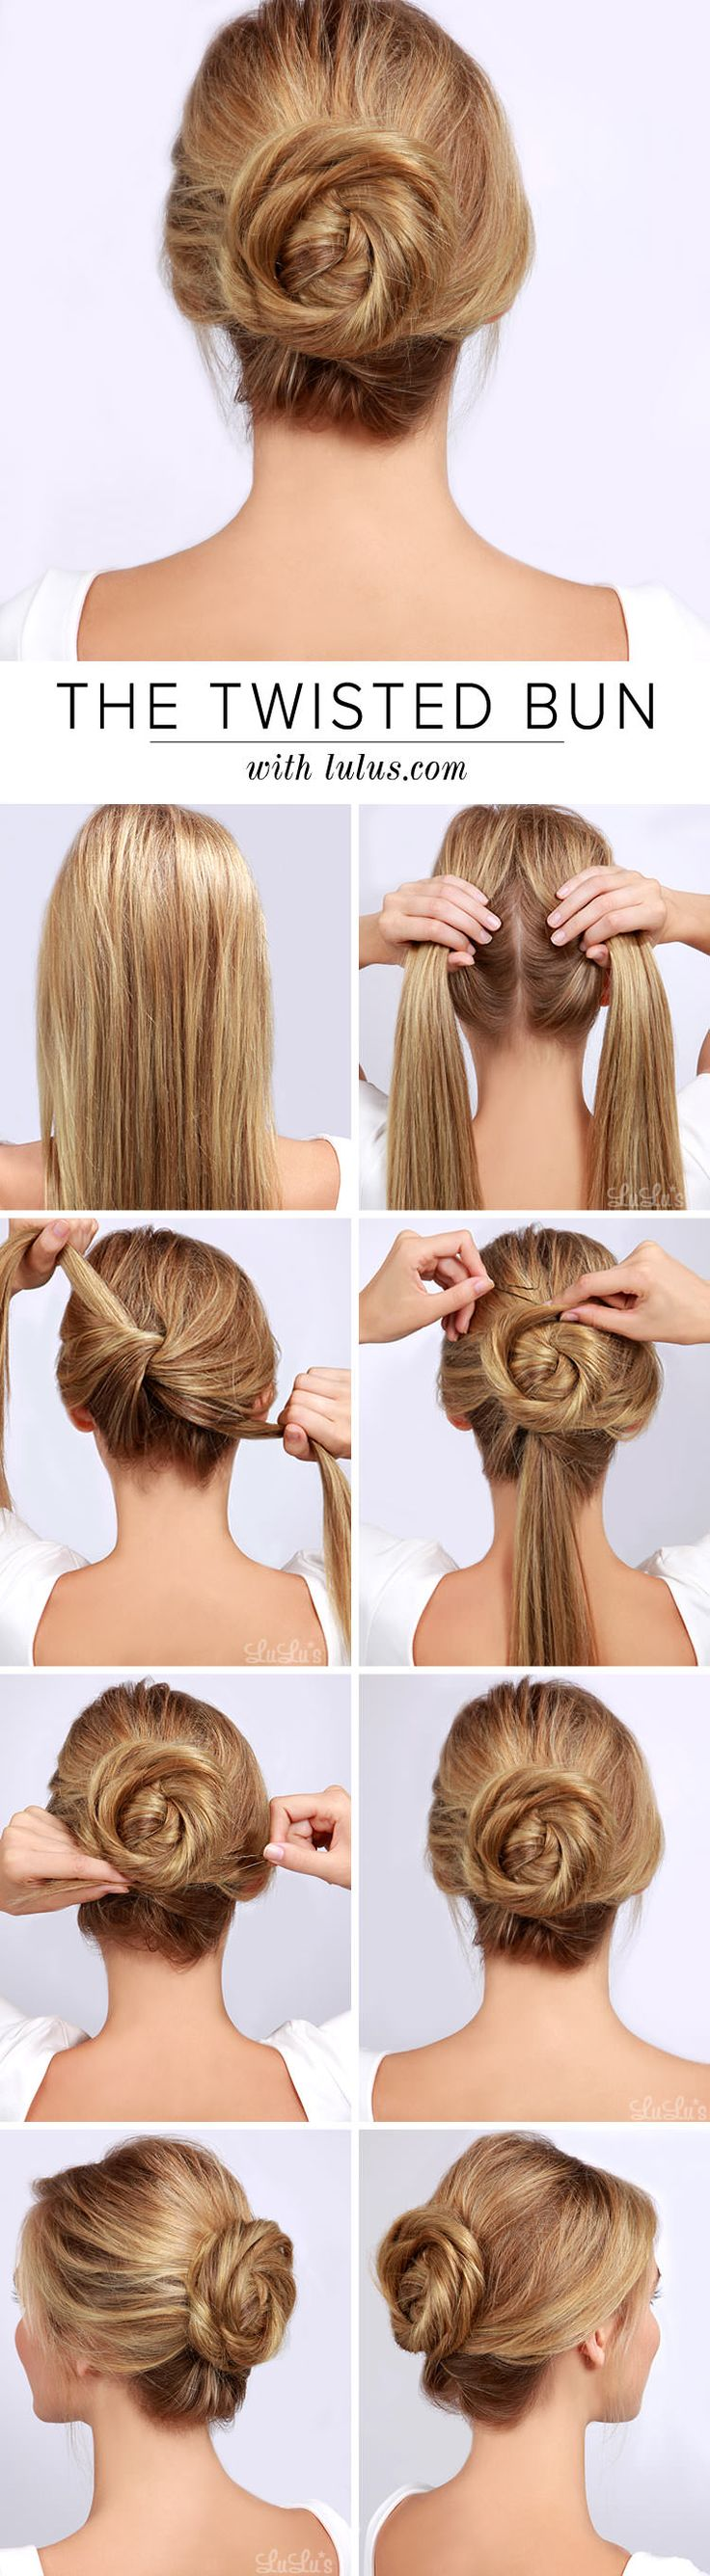 Super 1000 Ideas About Cute Simple Hairstyles On Pinterest Simple Short Hairstyles For Black Women Fulllsitofus